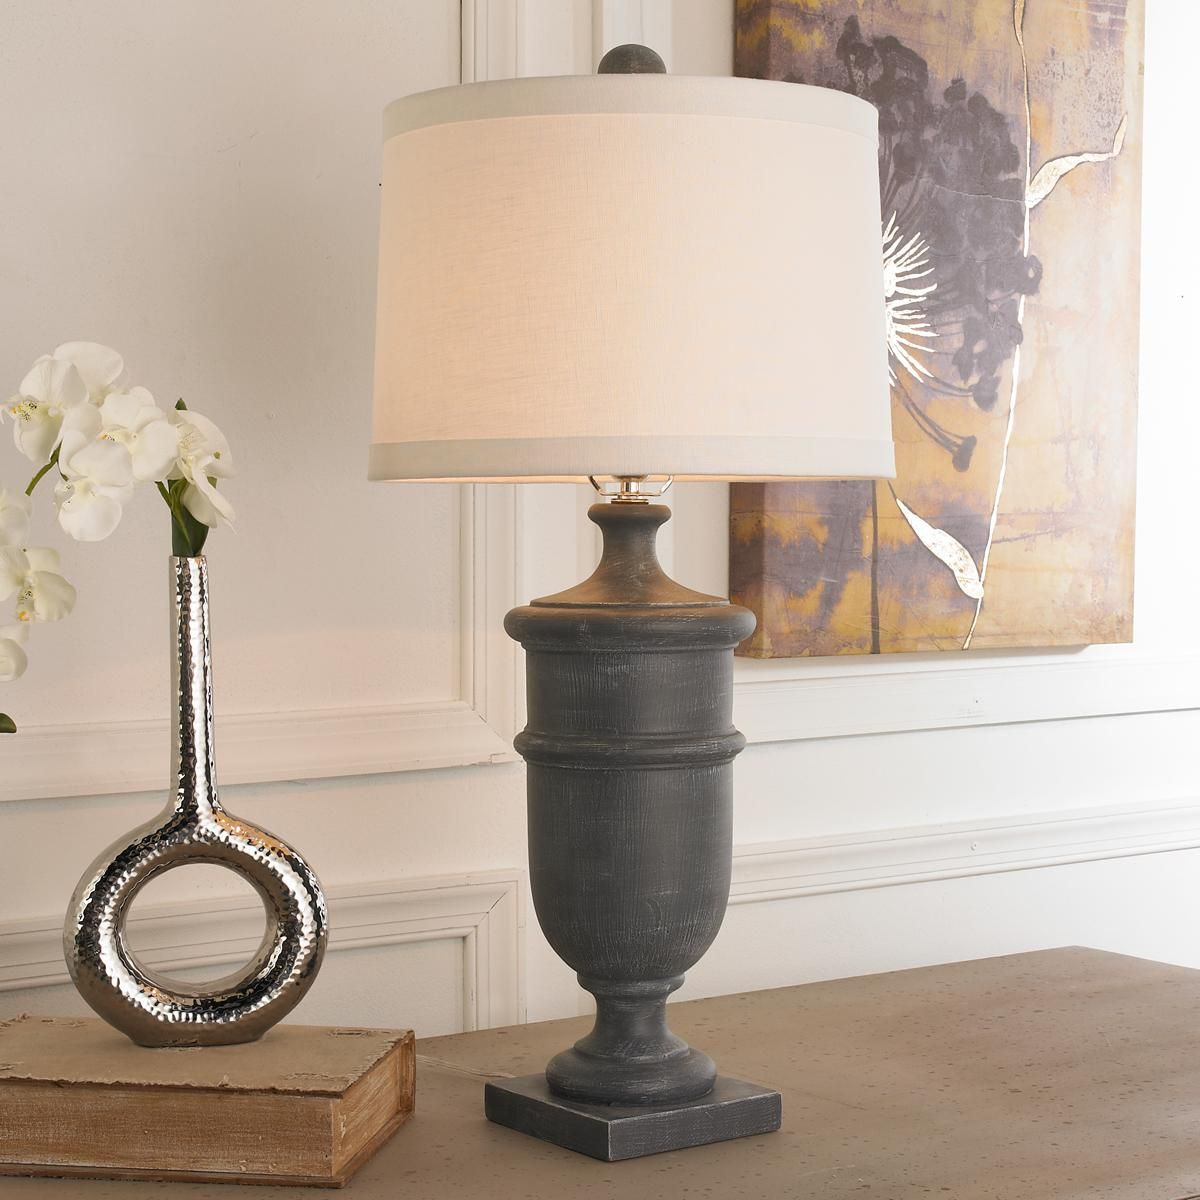 Weathered Garden Urn Table Lamp Table Lamp Shades